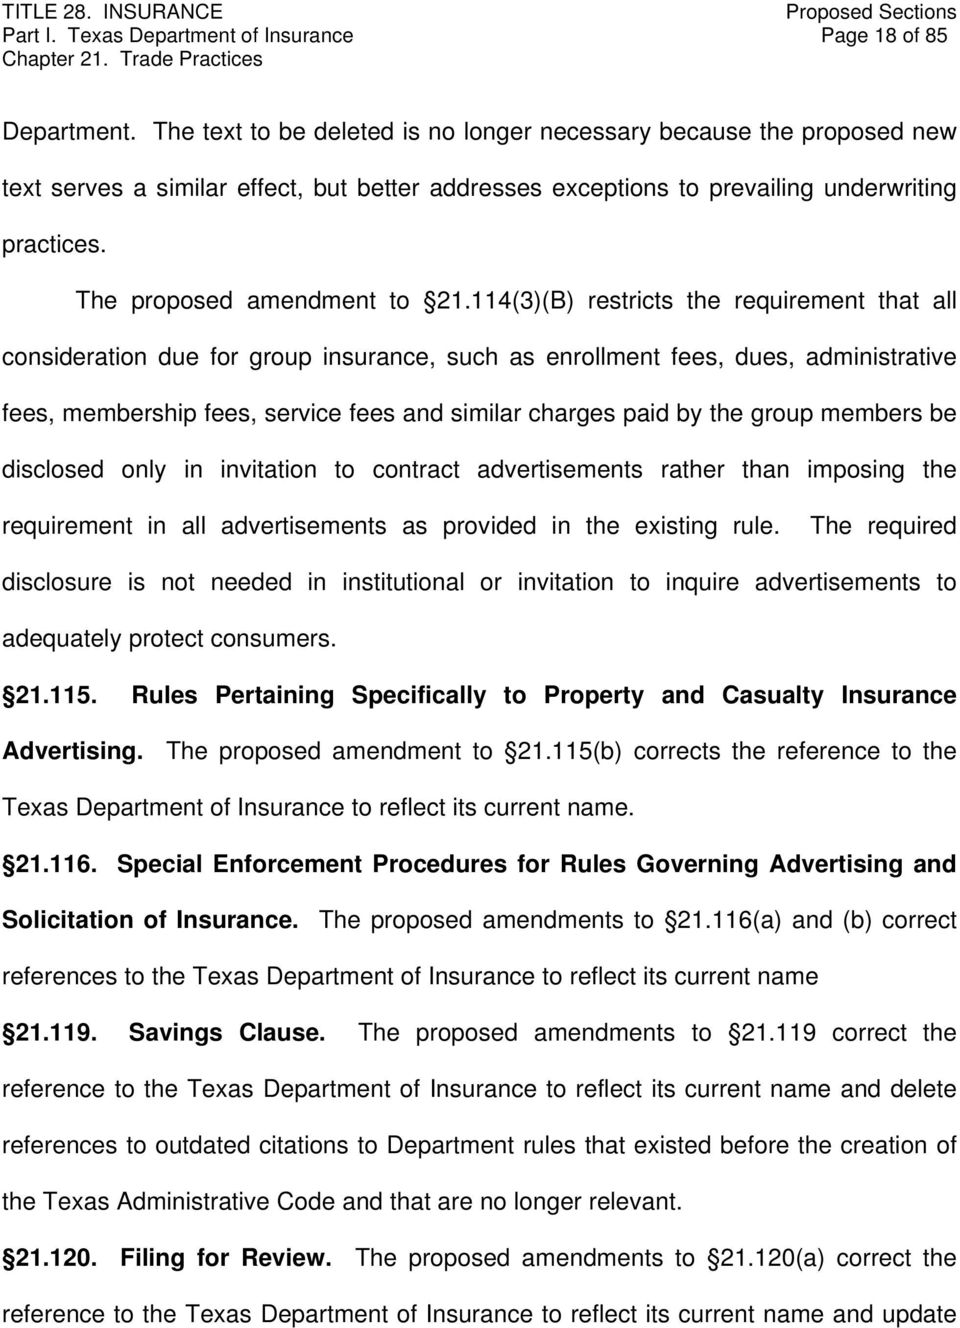 114(3)(B) restricts the requirement that all consideration due for group insurance, such as enrollment fees, dues, administrative fees, membership fees, service fees and similar charges paid by the